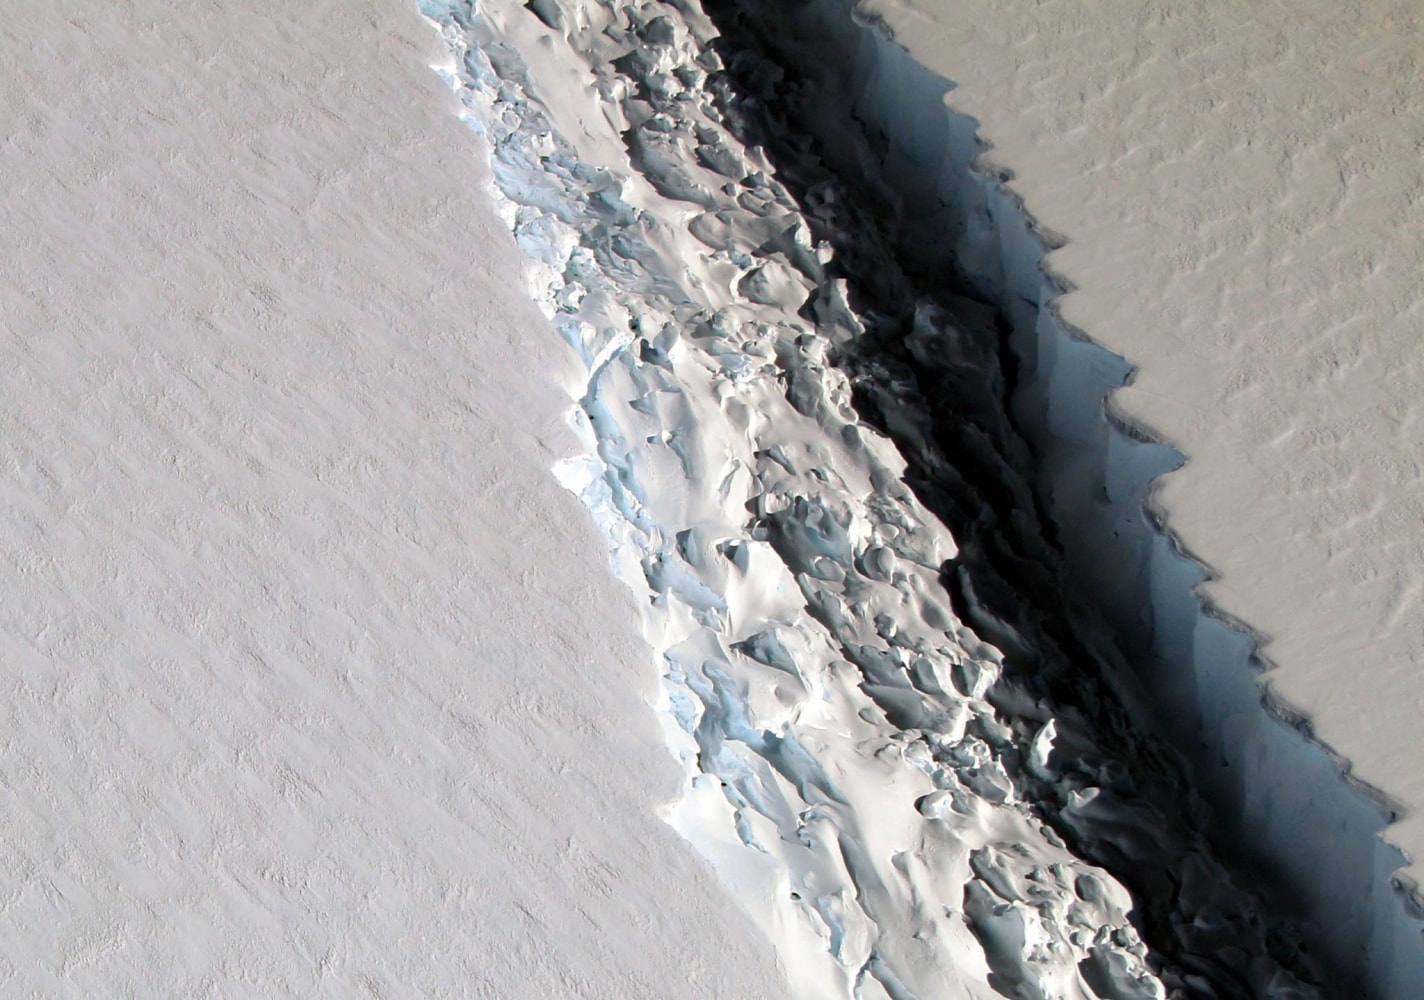 Iceberg breaking from Antarctica could be bad news